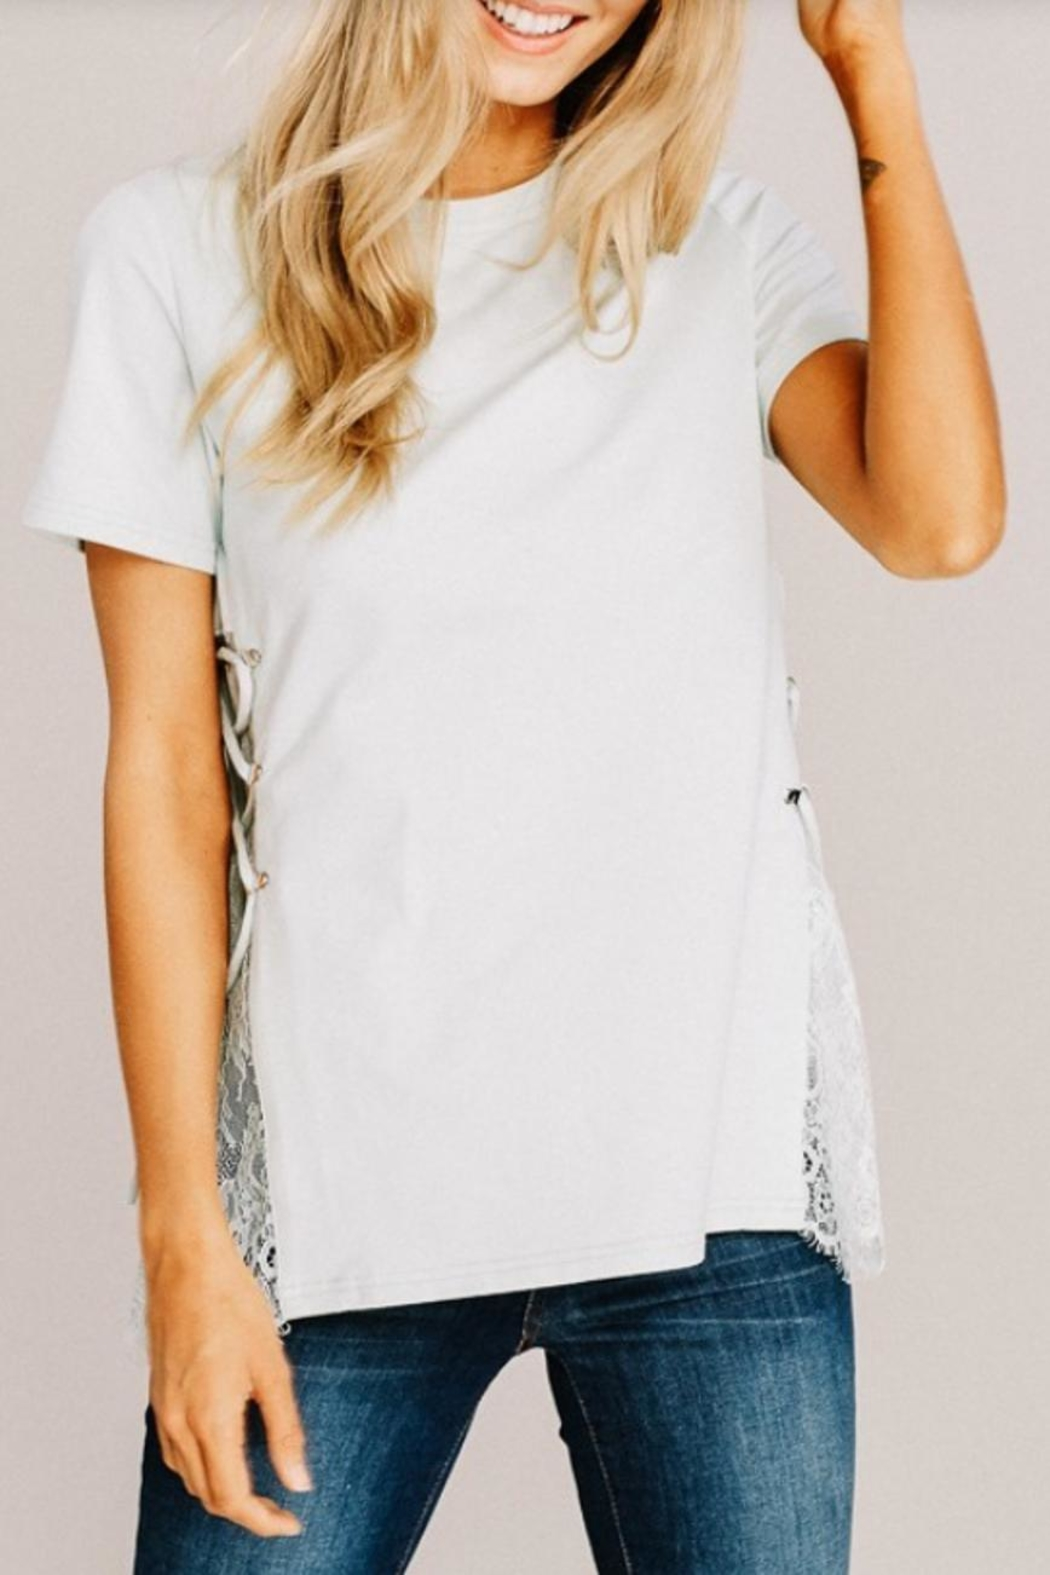 Main Strip Modern Mint Top - Front Cropped Image